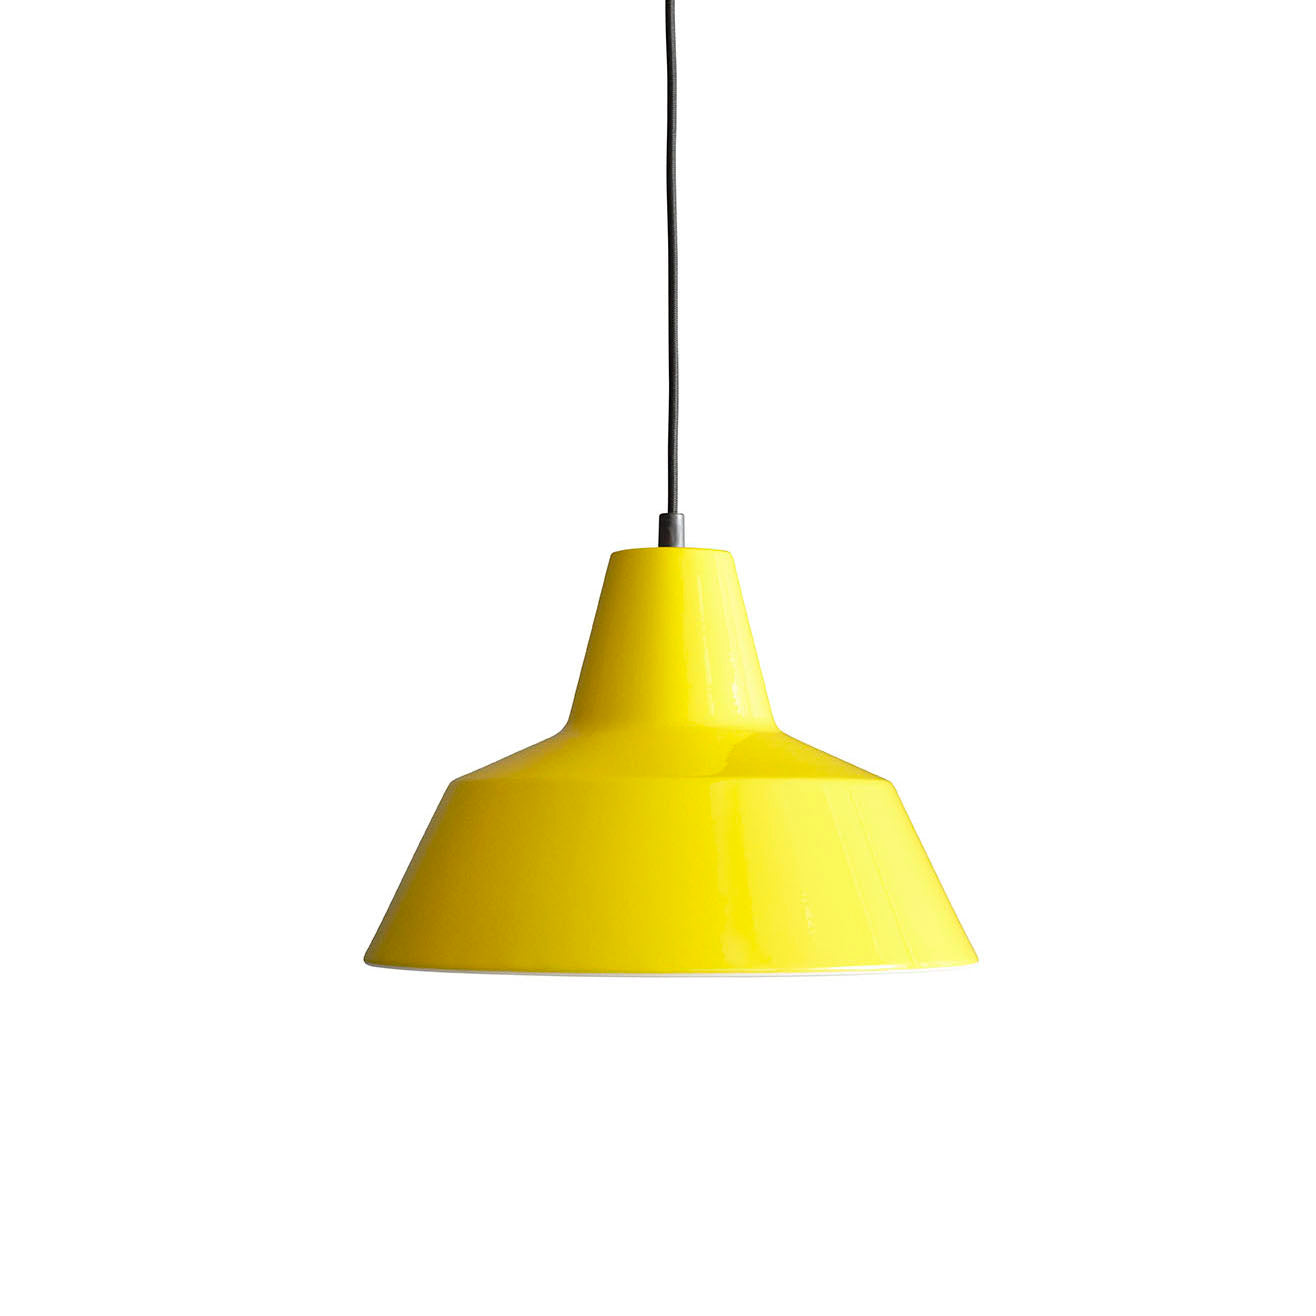 Workshop Pendant Lamp W3: Yellow